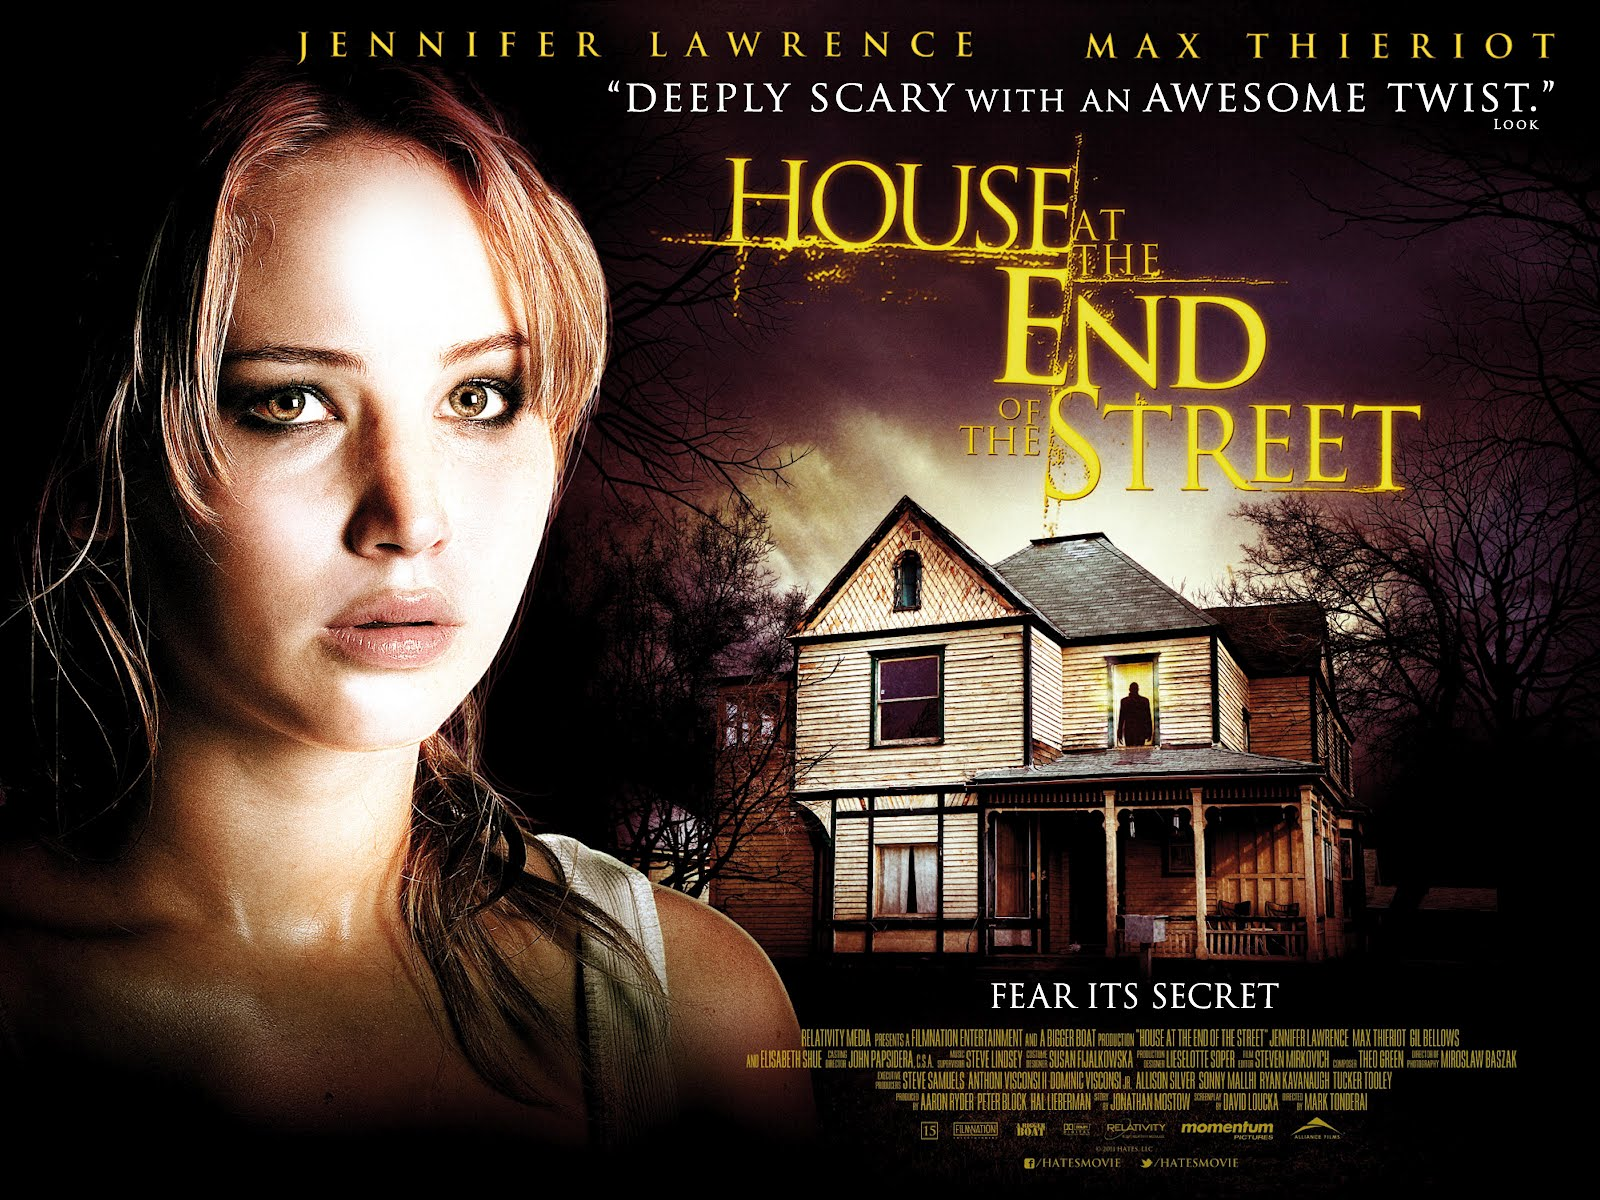 The House Of The End Of The Street